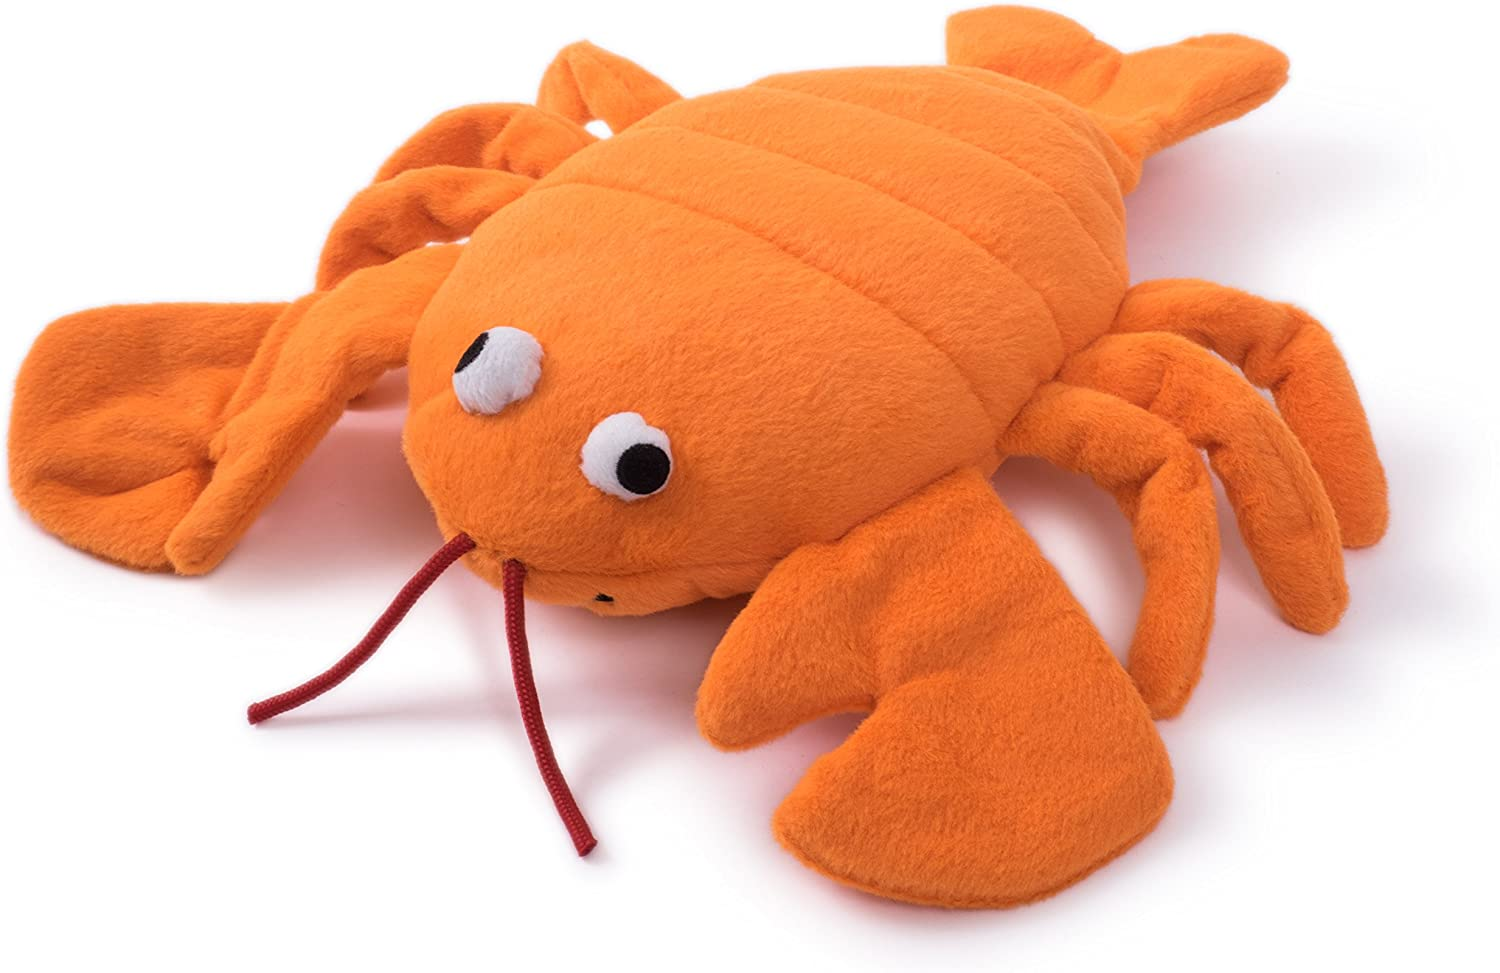 Petface Dog Toy, Sqeaky Chew Toy, Super Tough Plush Larry Lobster, orange